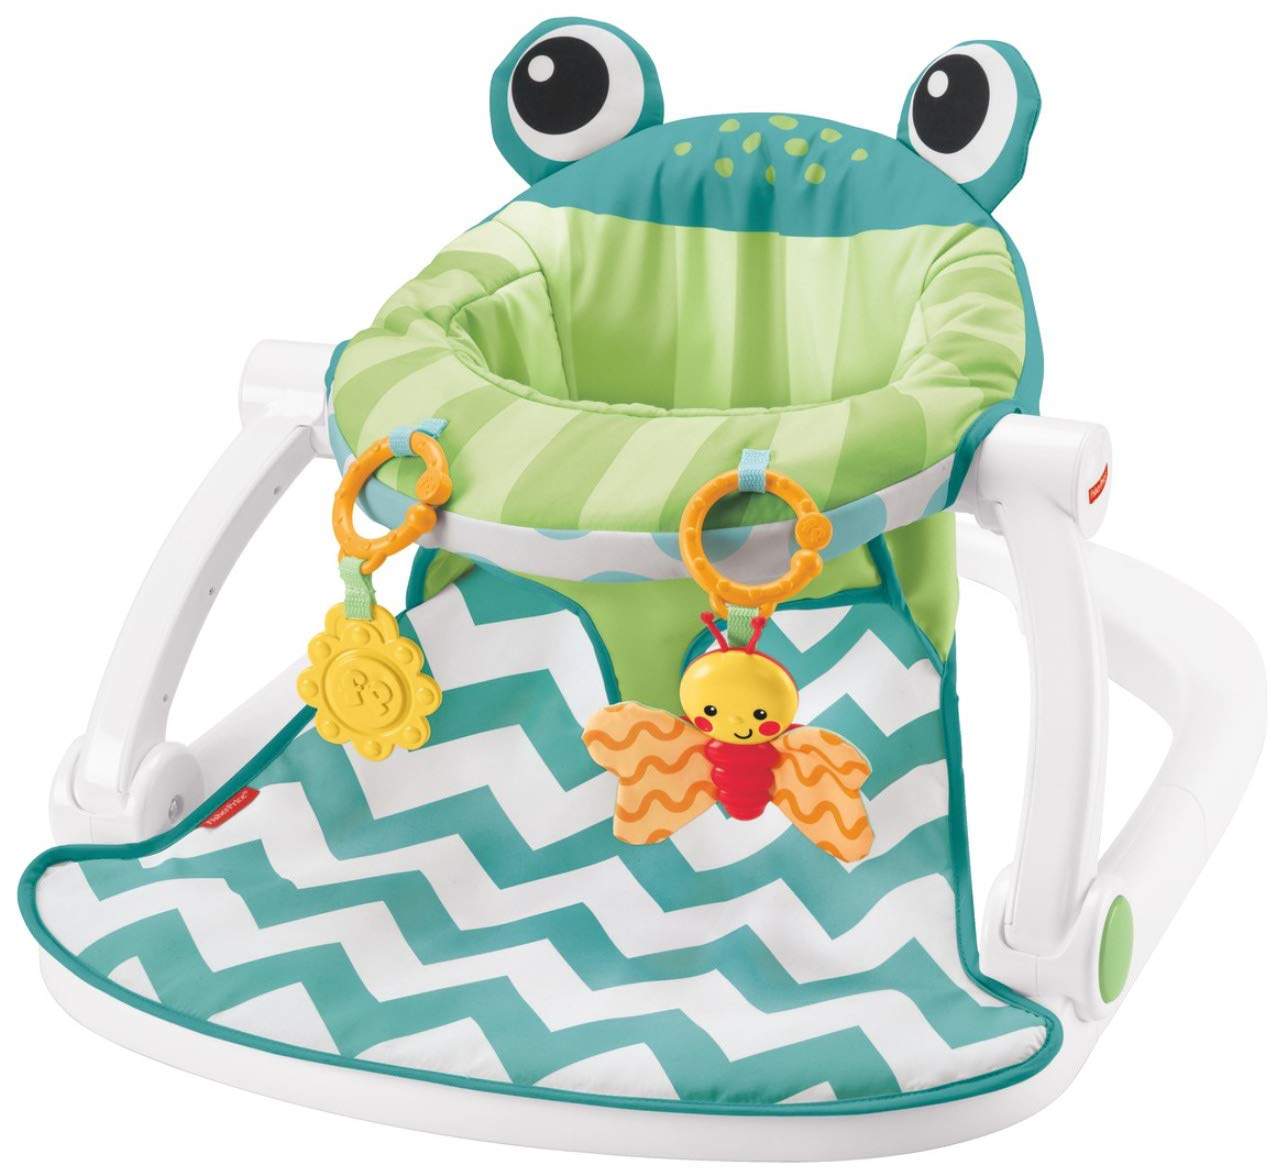 Fisher-Price Sit-Me-Up Floor Seat, Citrus Frog Amazonca/FISNE CMH49